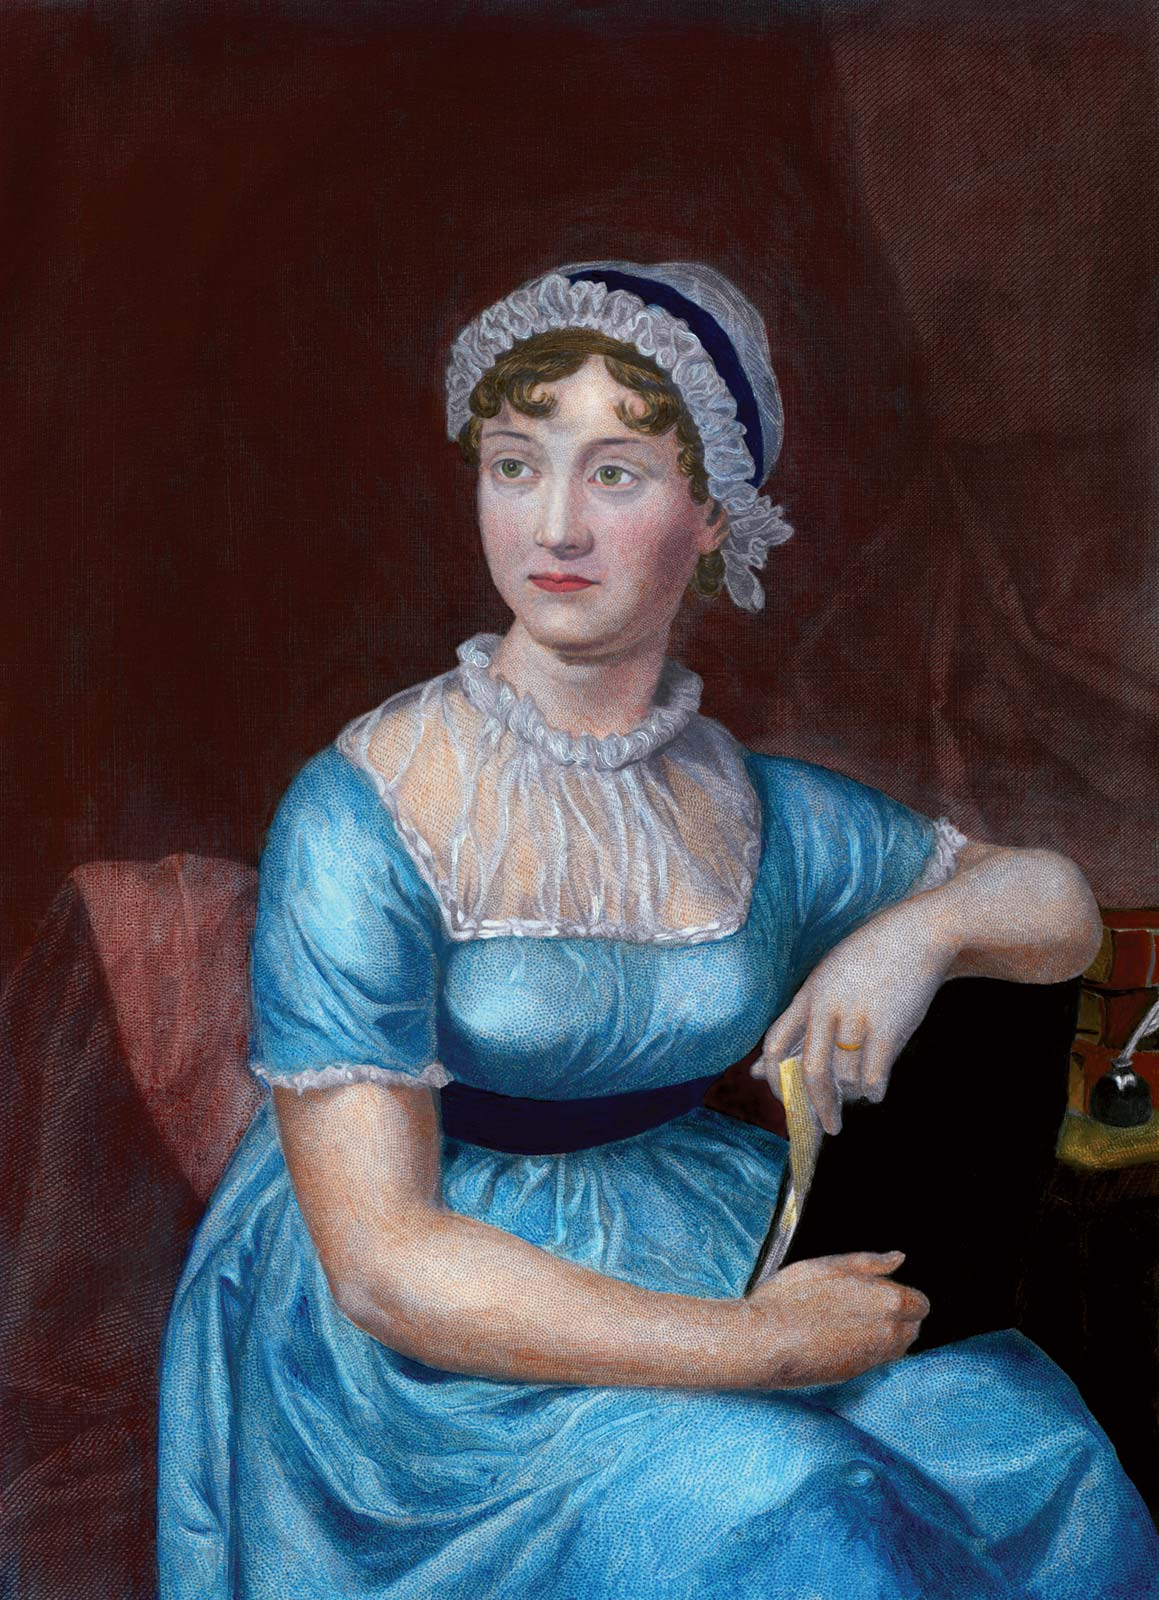 f71b0522bddeabe47c55c8263e92dbc1 - On The Same Page with Jane Austen: Helena Kelly Sets the Record Straight About the English Novelist